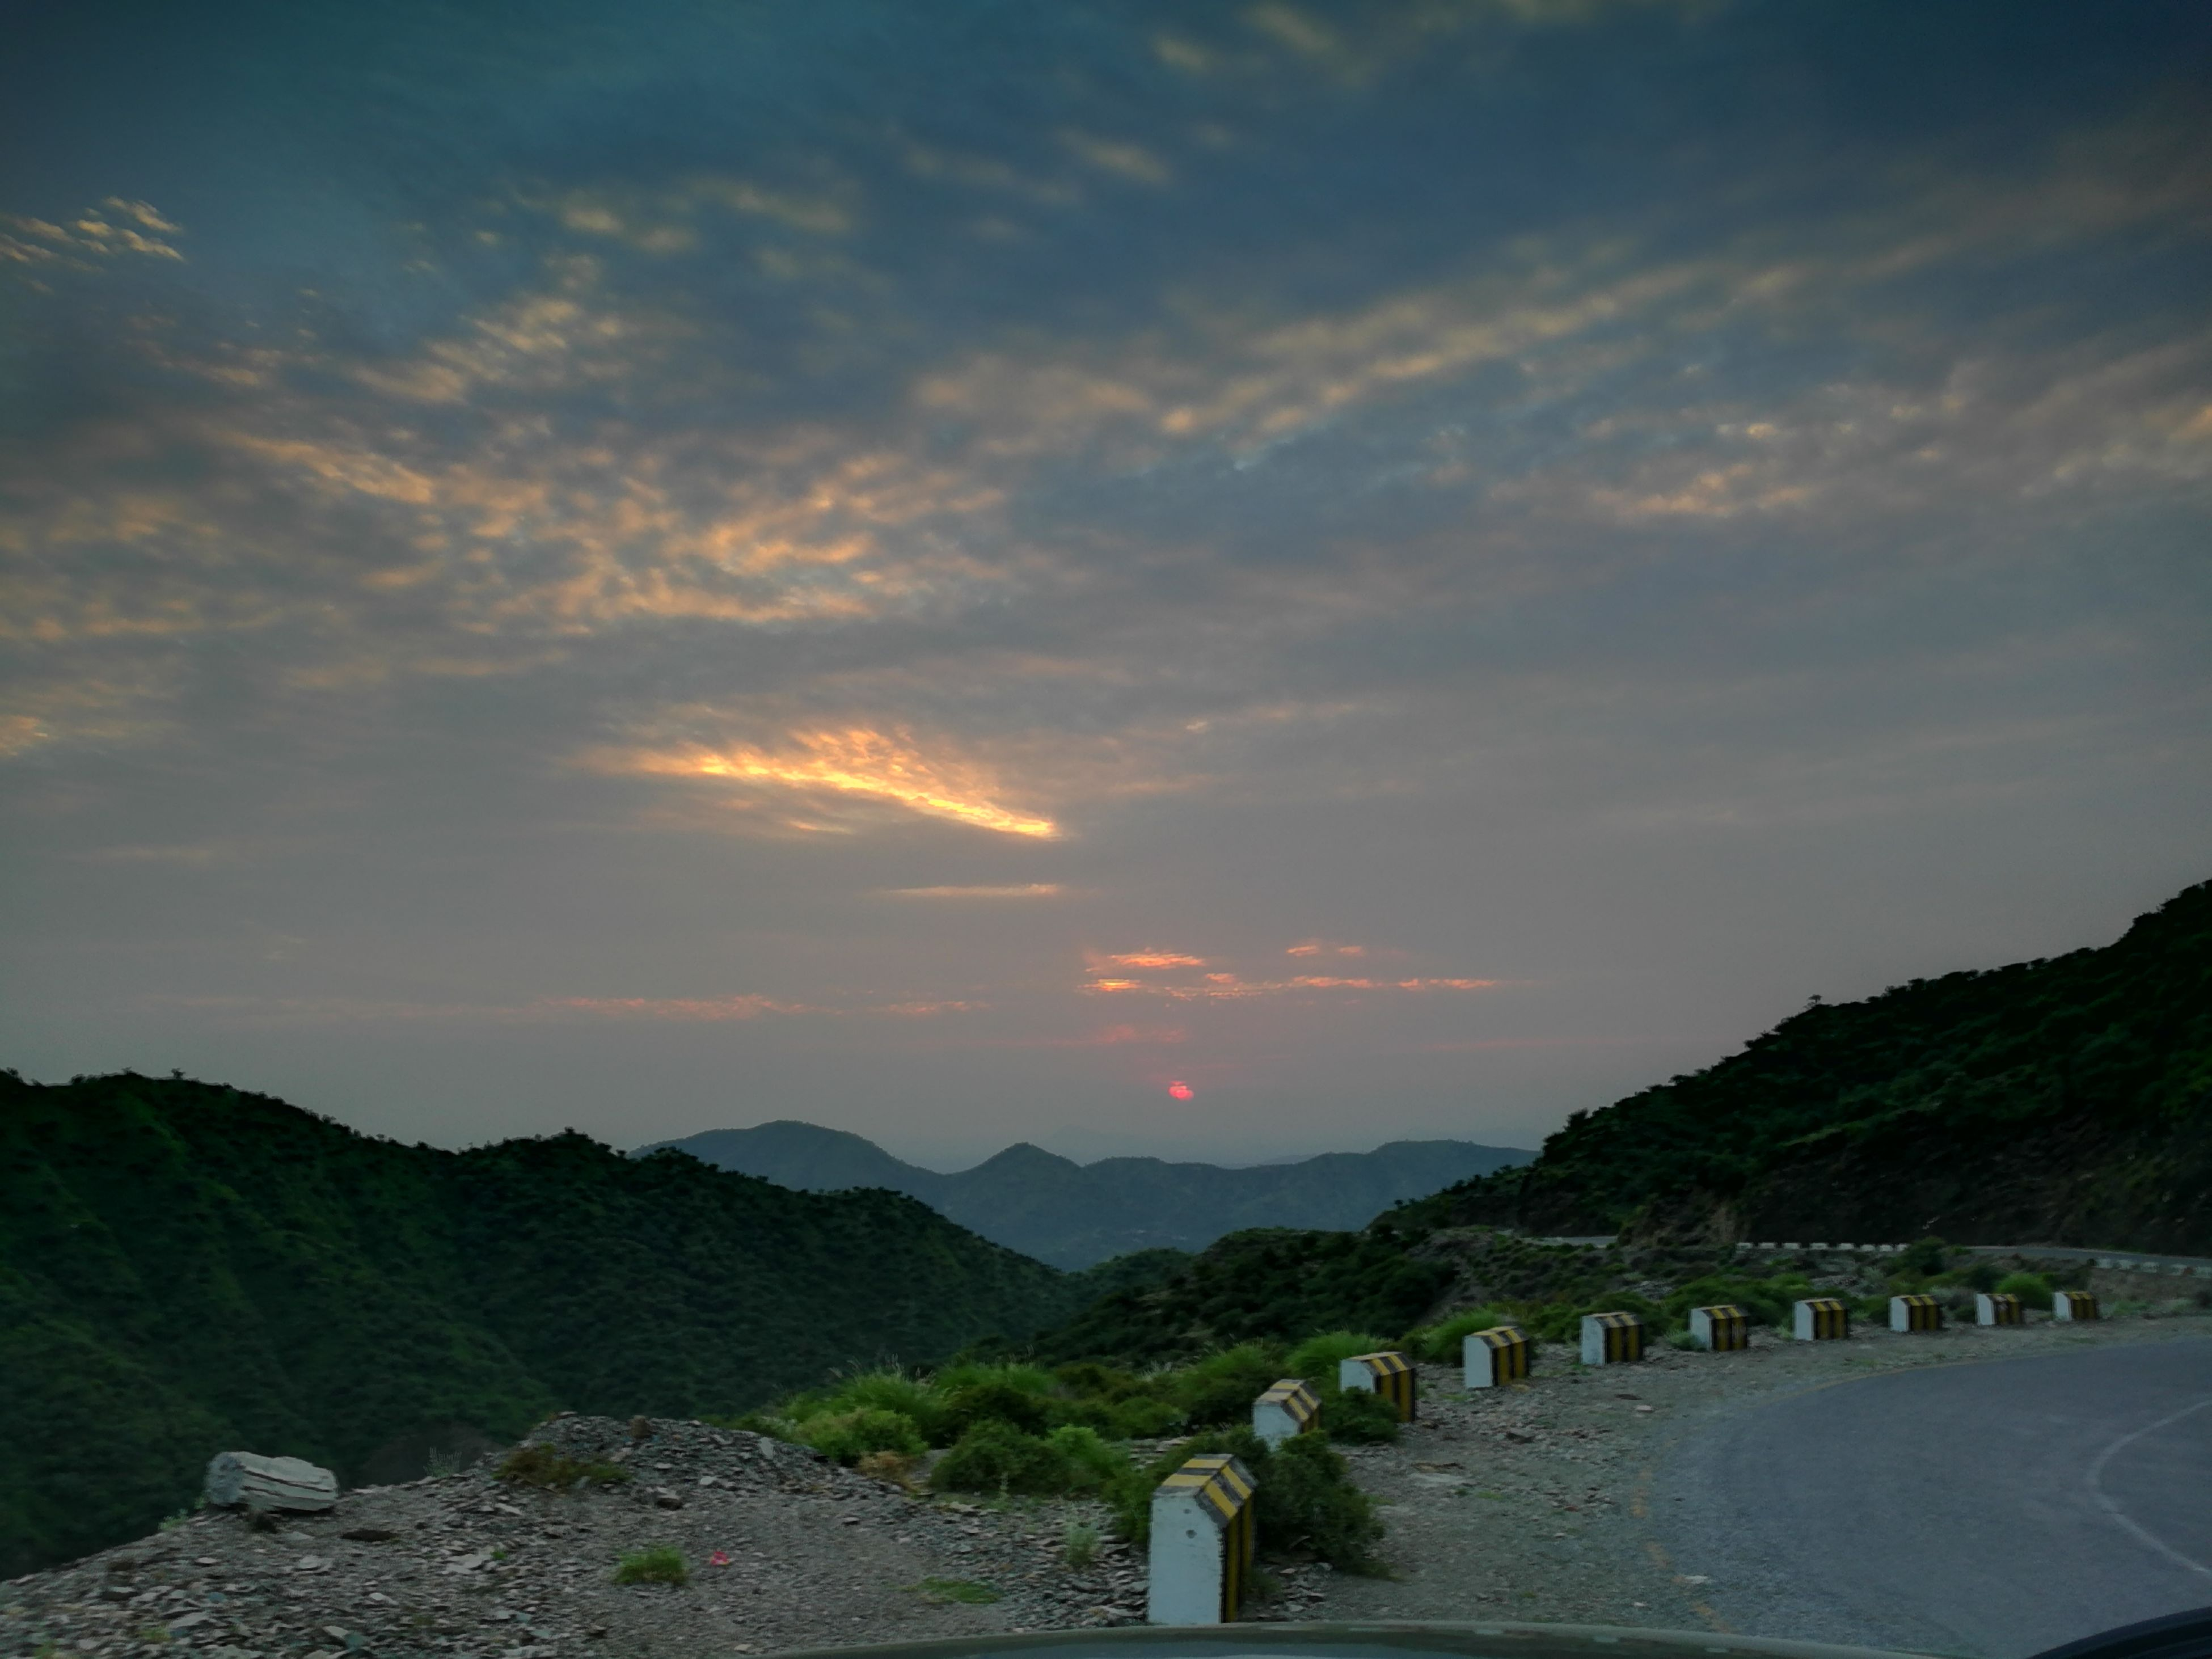 mountain, tranquil scene, mountain range, cloud - sky, sky, tranquility, scenics, water, cloud, outdoors, tourism, non-urban scene, nature, beauty in nature, atmosphere, sun, atmospheric mood, sea, observation point, long, distant